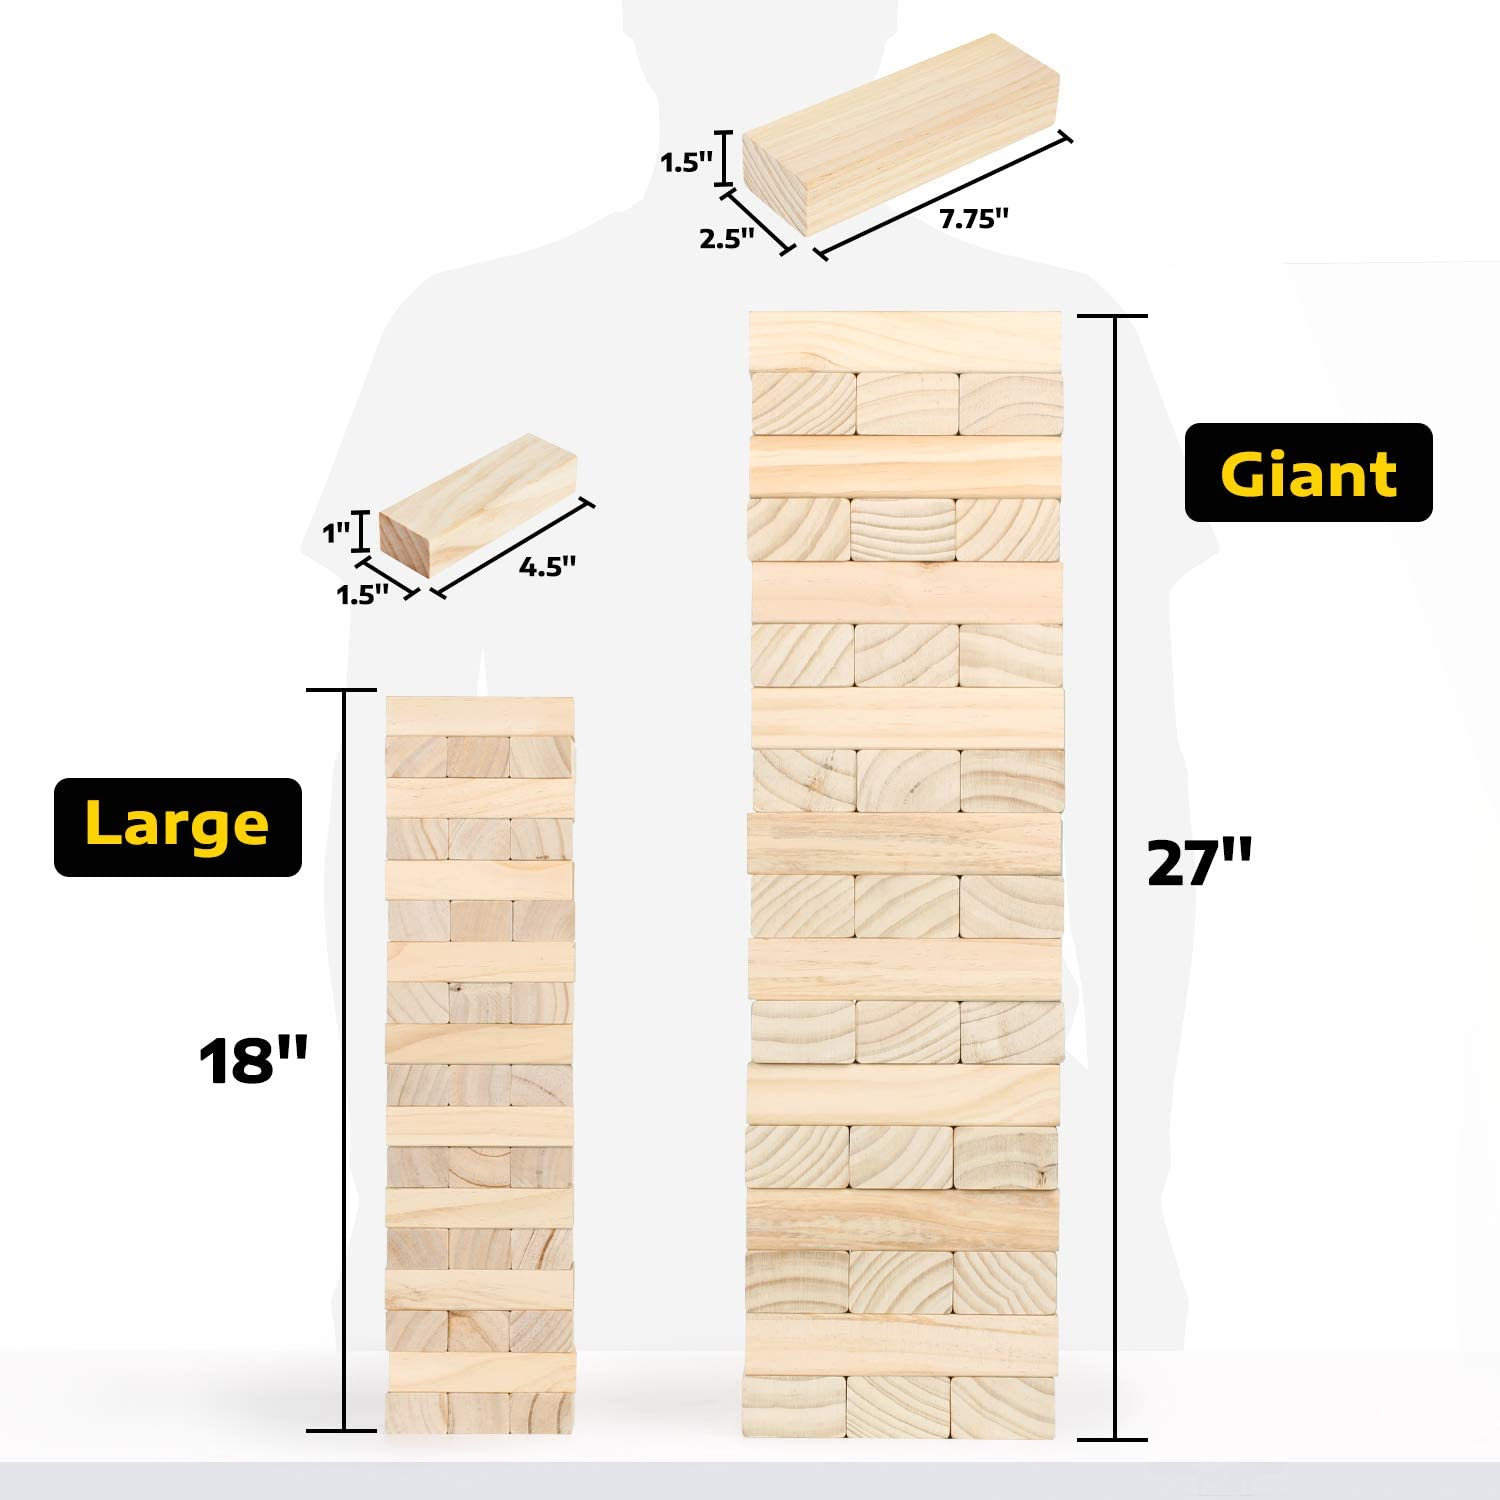 Wooden Stacking Yard Game for Kids and Adults 54 Oversized Blocks A11N Giant Tumble Tower Stacks to 5+ Feet